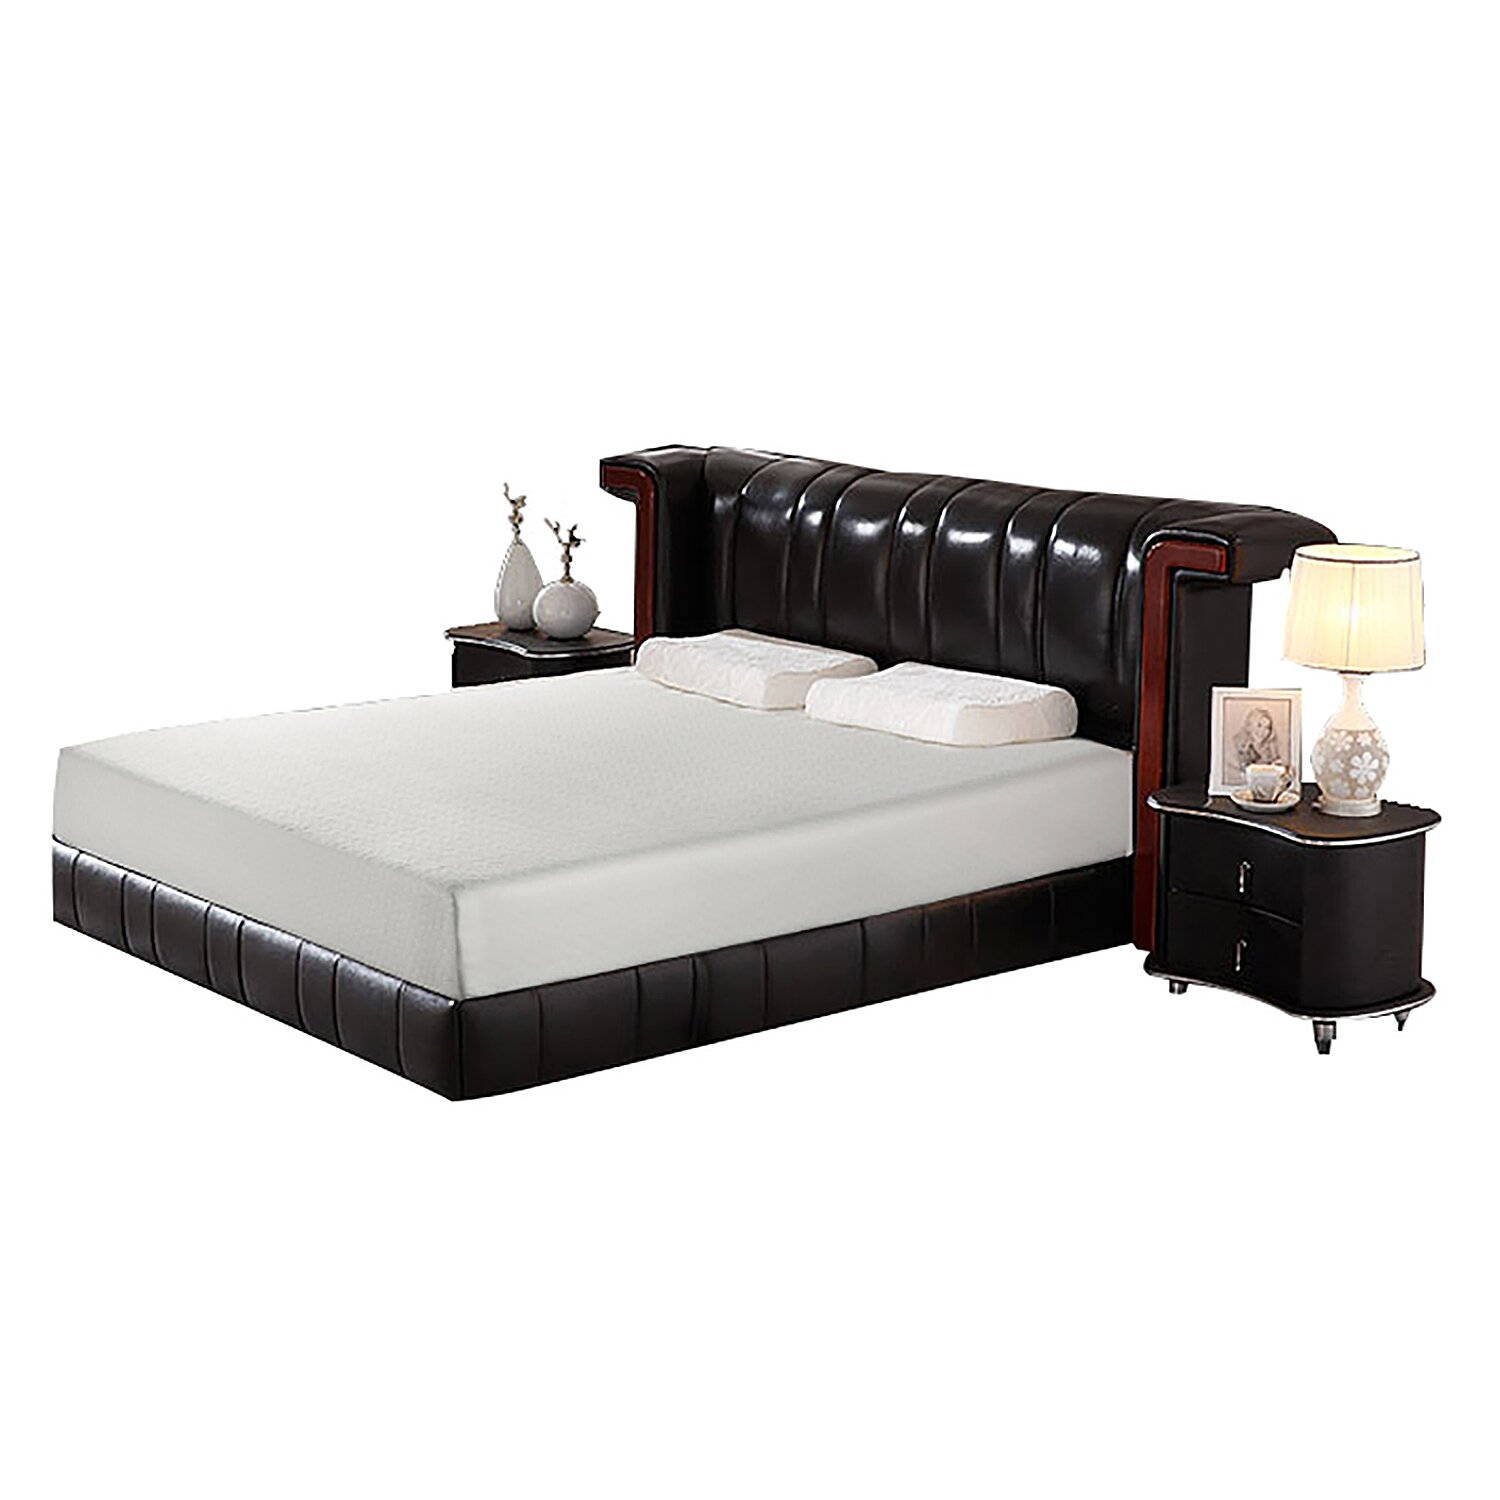 Merax 8 memory foam mattress reviews Mattress sale memory foam